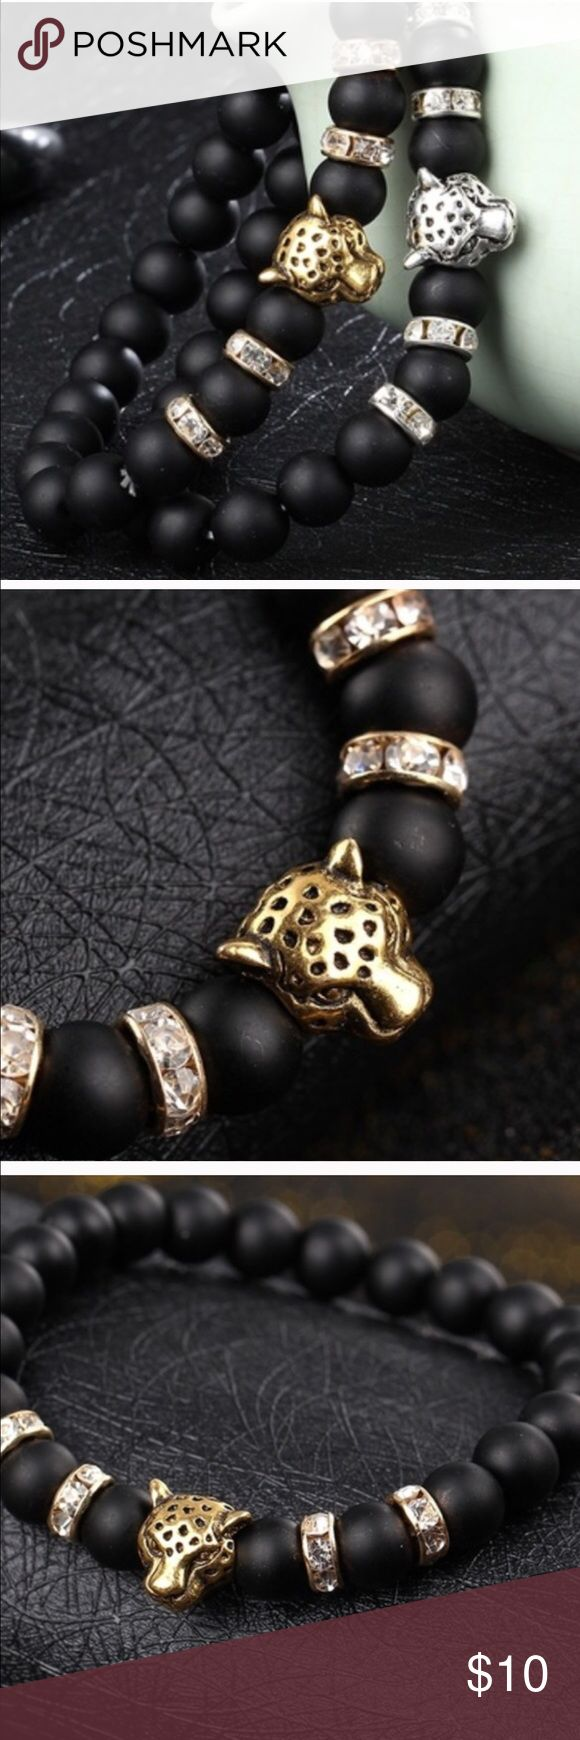 🆕Matte Lava Unisex Stretch Bracelet Leopard Face Great bracelets to wear with a watch or stack with other bracelets. Gold and silver available. Price firm unless bundling. 15% discount on two or more items. Accessories Jewelry